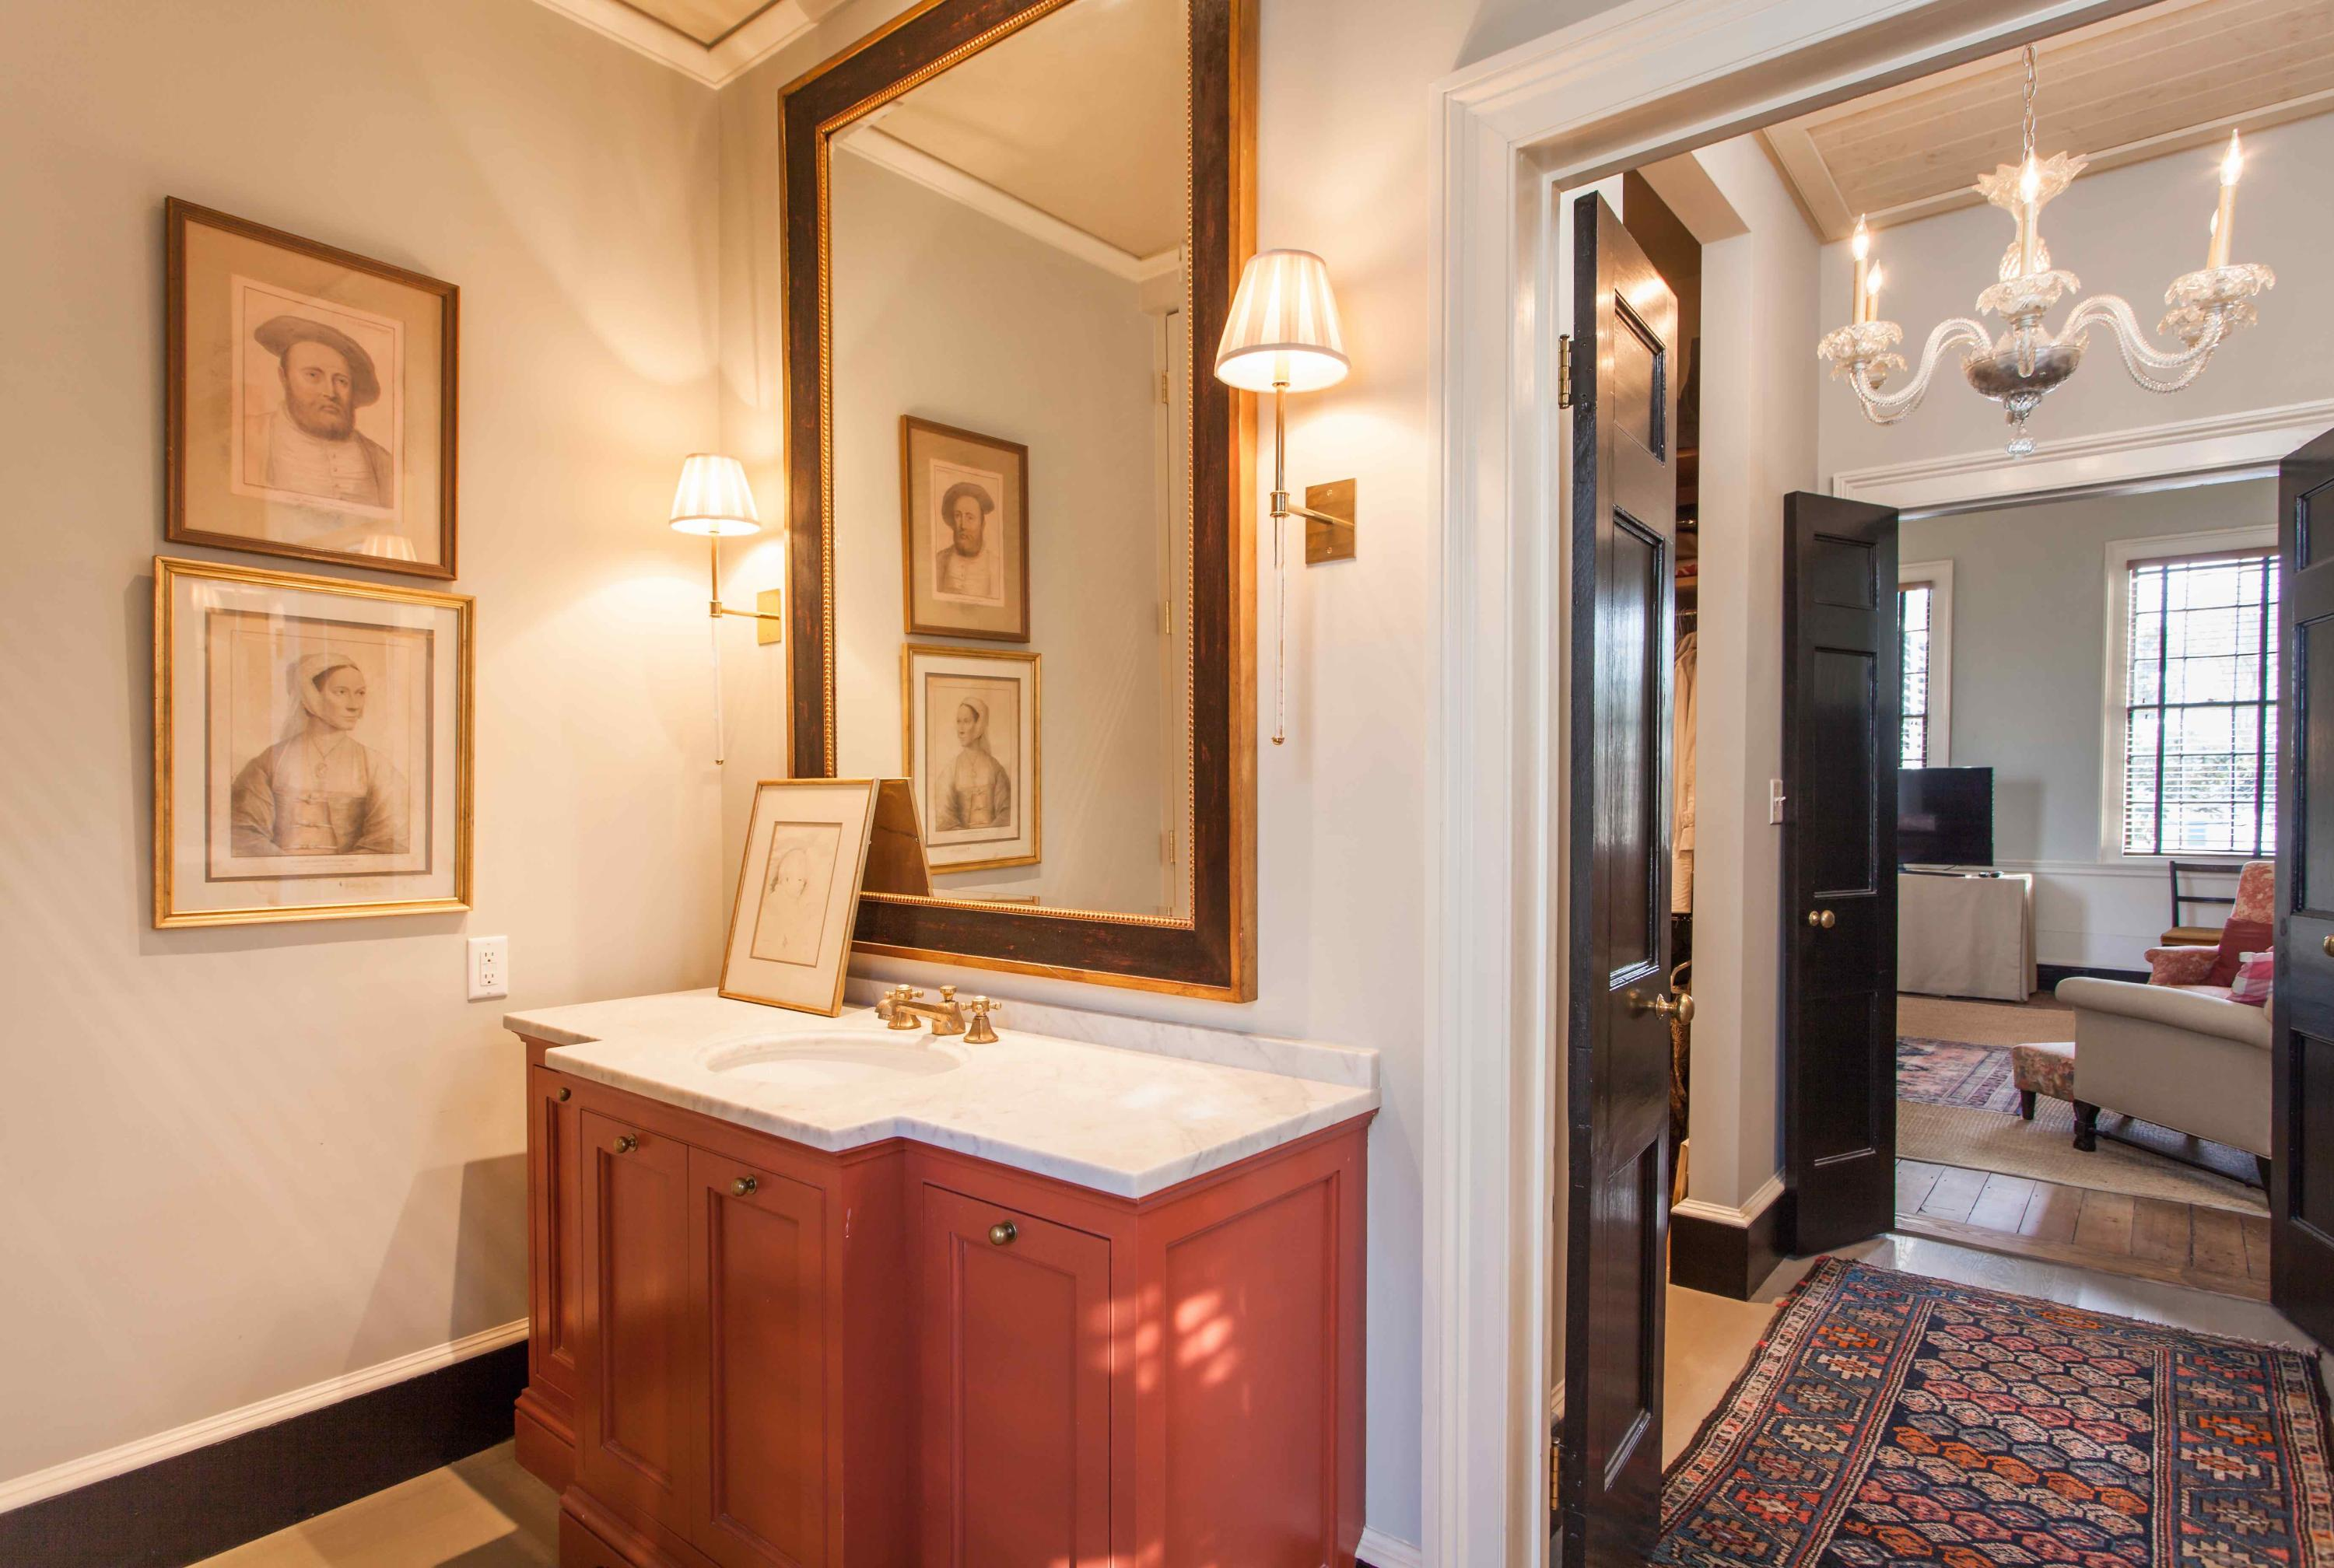 South of Broad Homes For Sale - 58 South Battery, Charleston, SC - 44